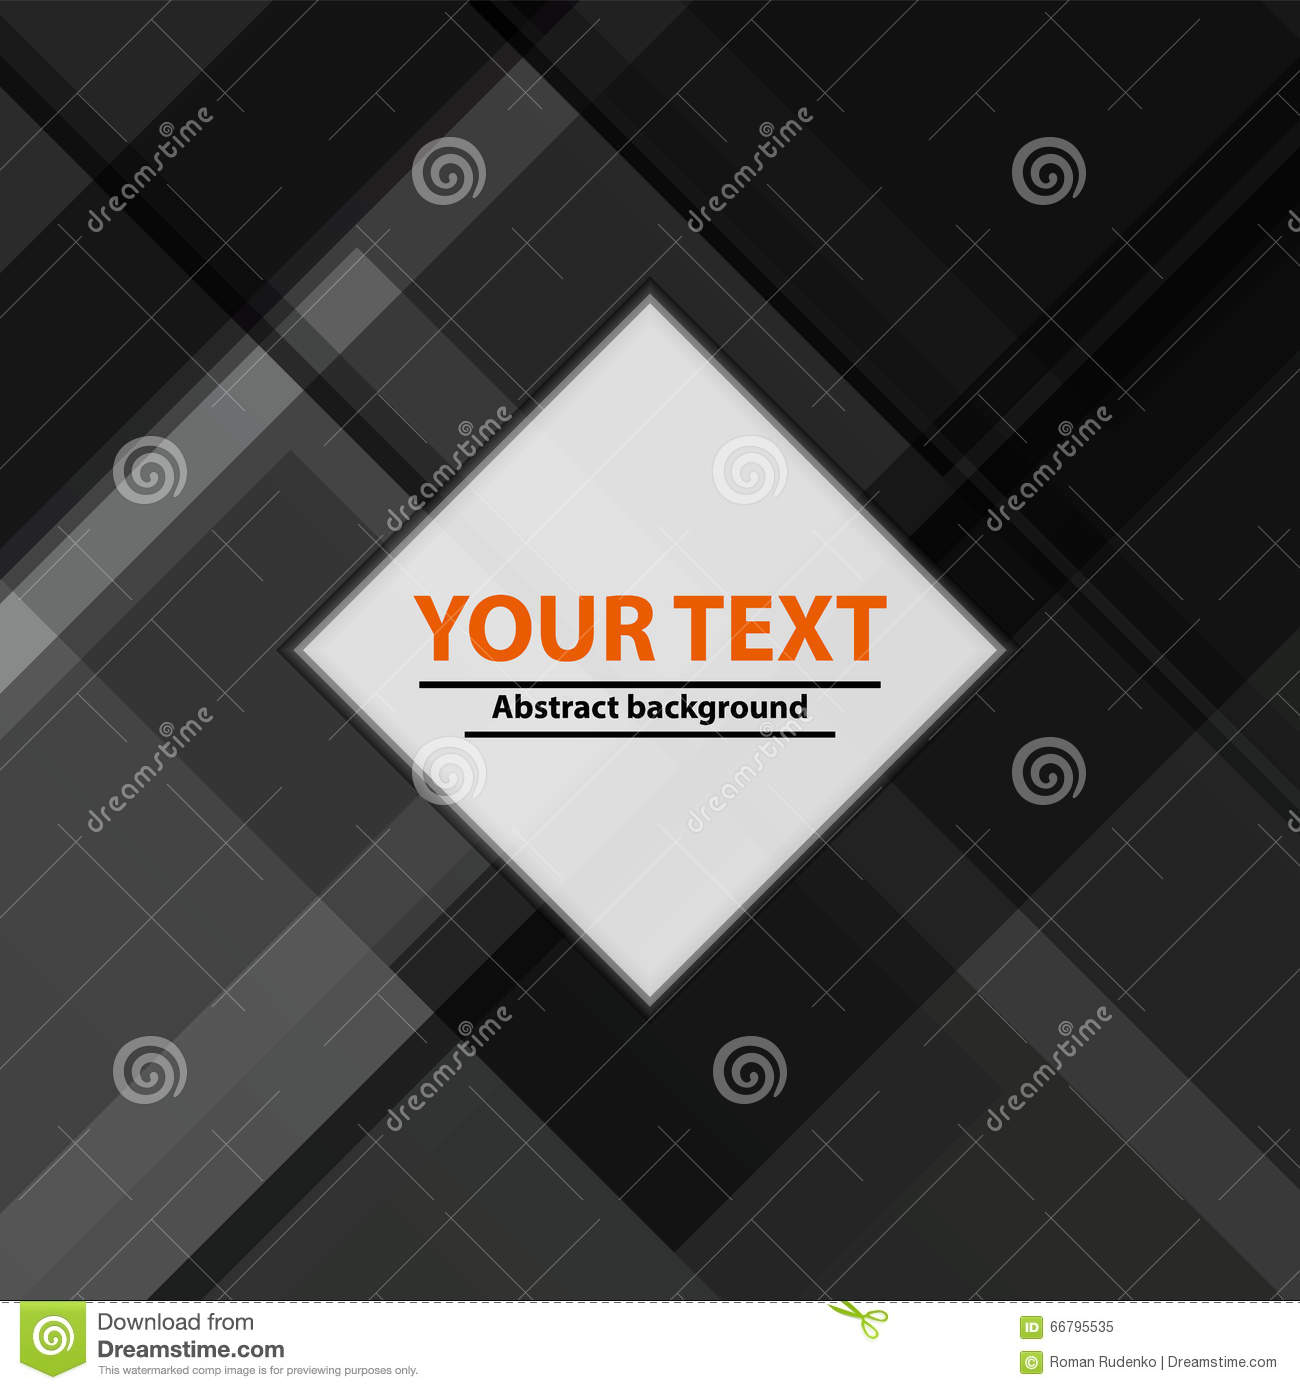 Abstract Background In Grayscale. Vector Template Or Cover With ...